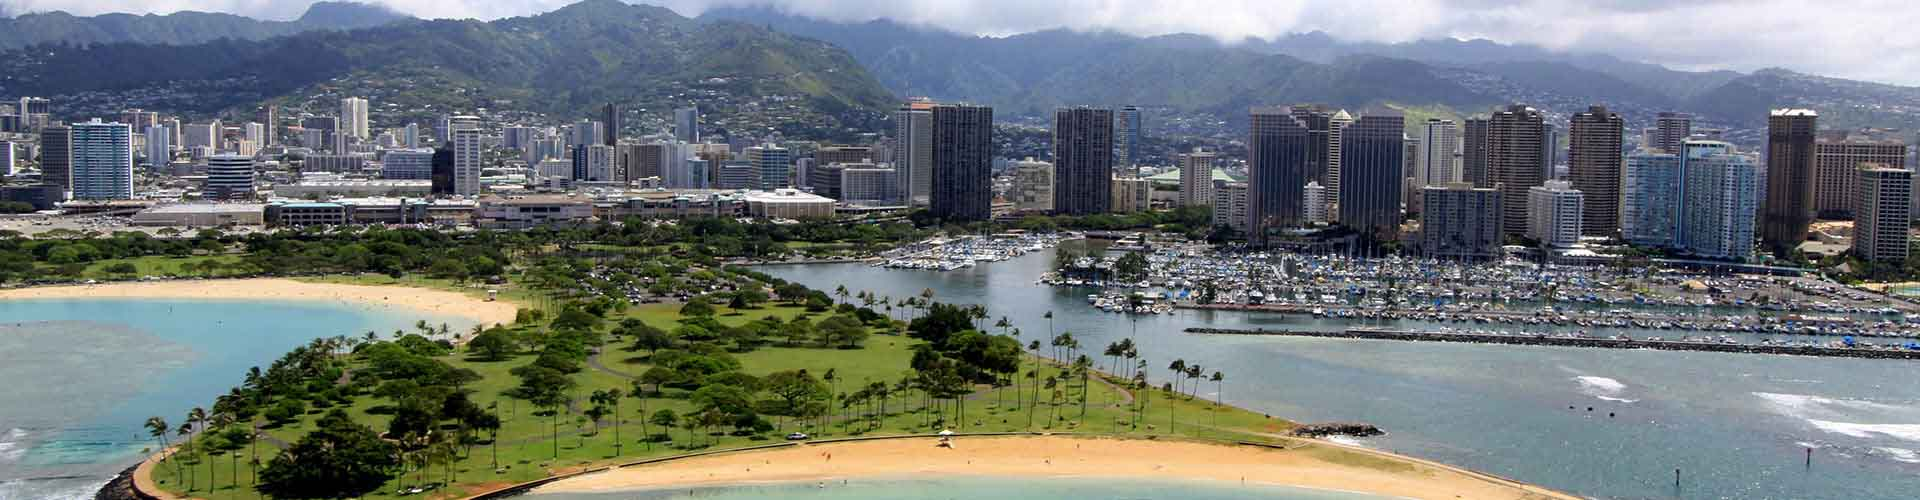 Honolulu – Hostels in Honolulu. Maps for Honolulu, Photos and Reviews for each hostel in Honolulu.